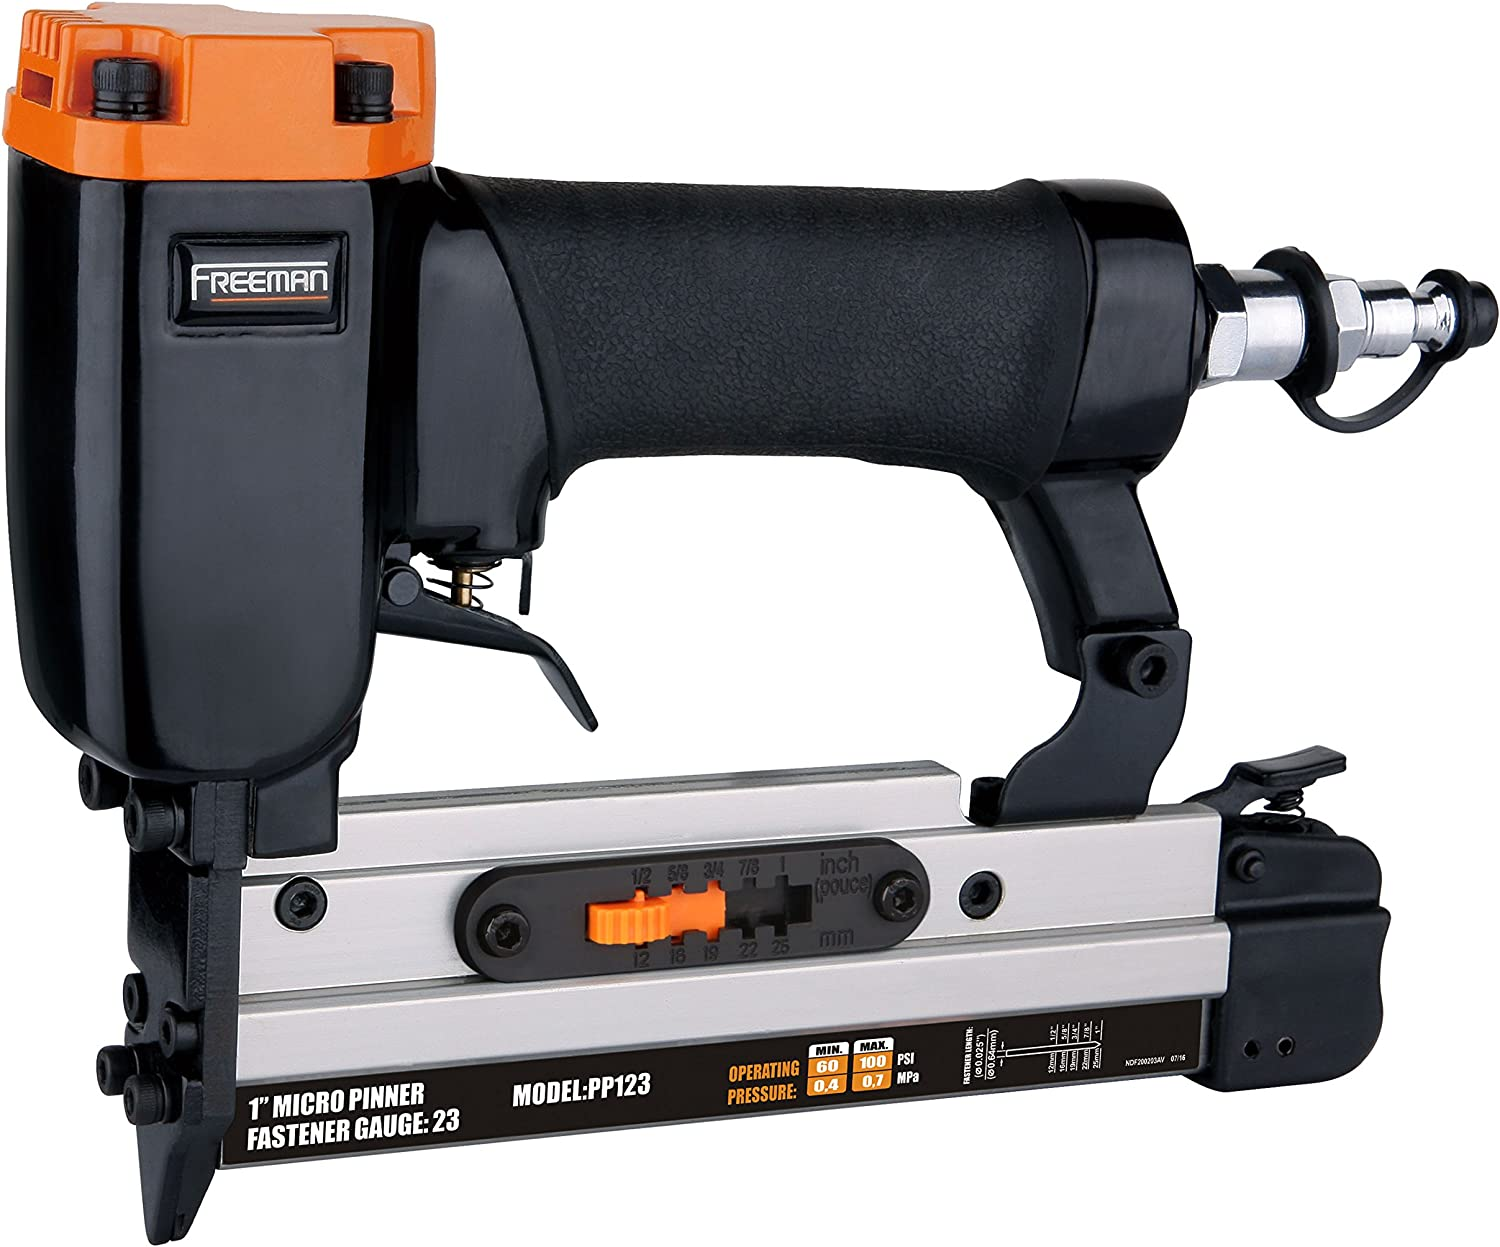 Freeman PP123 Pneumatic 23-Gauge 1 Micro Pinner Ergonomic and Lightweight Nail Gun with Safety Trigger and Pin Size Selector for Crafts, Moulding, and Picture Frames